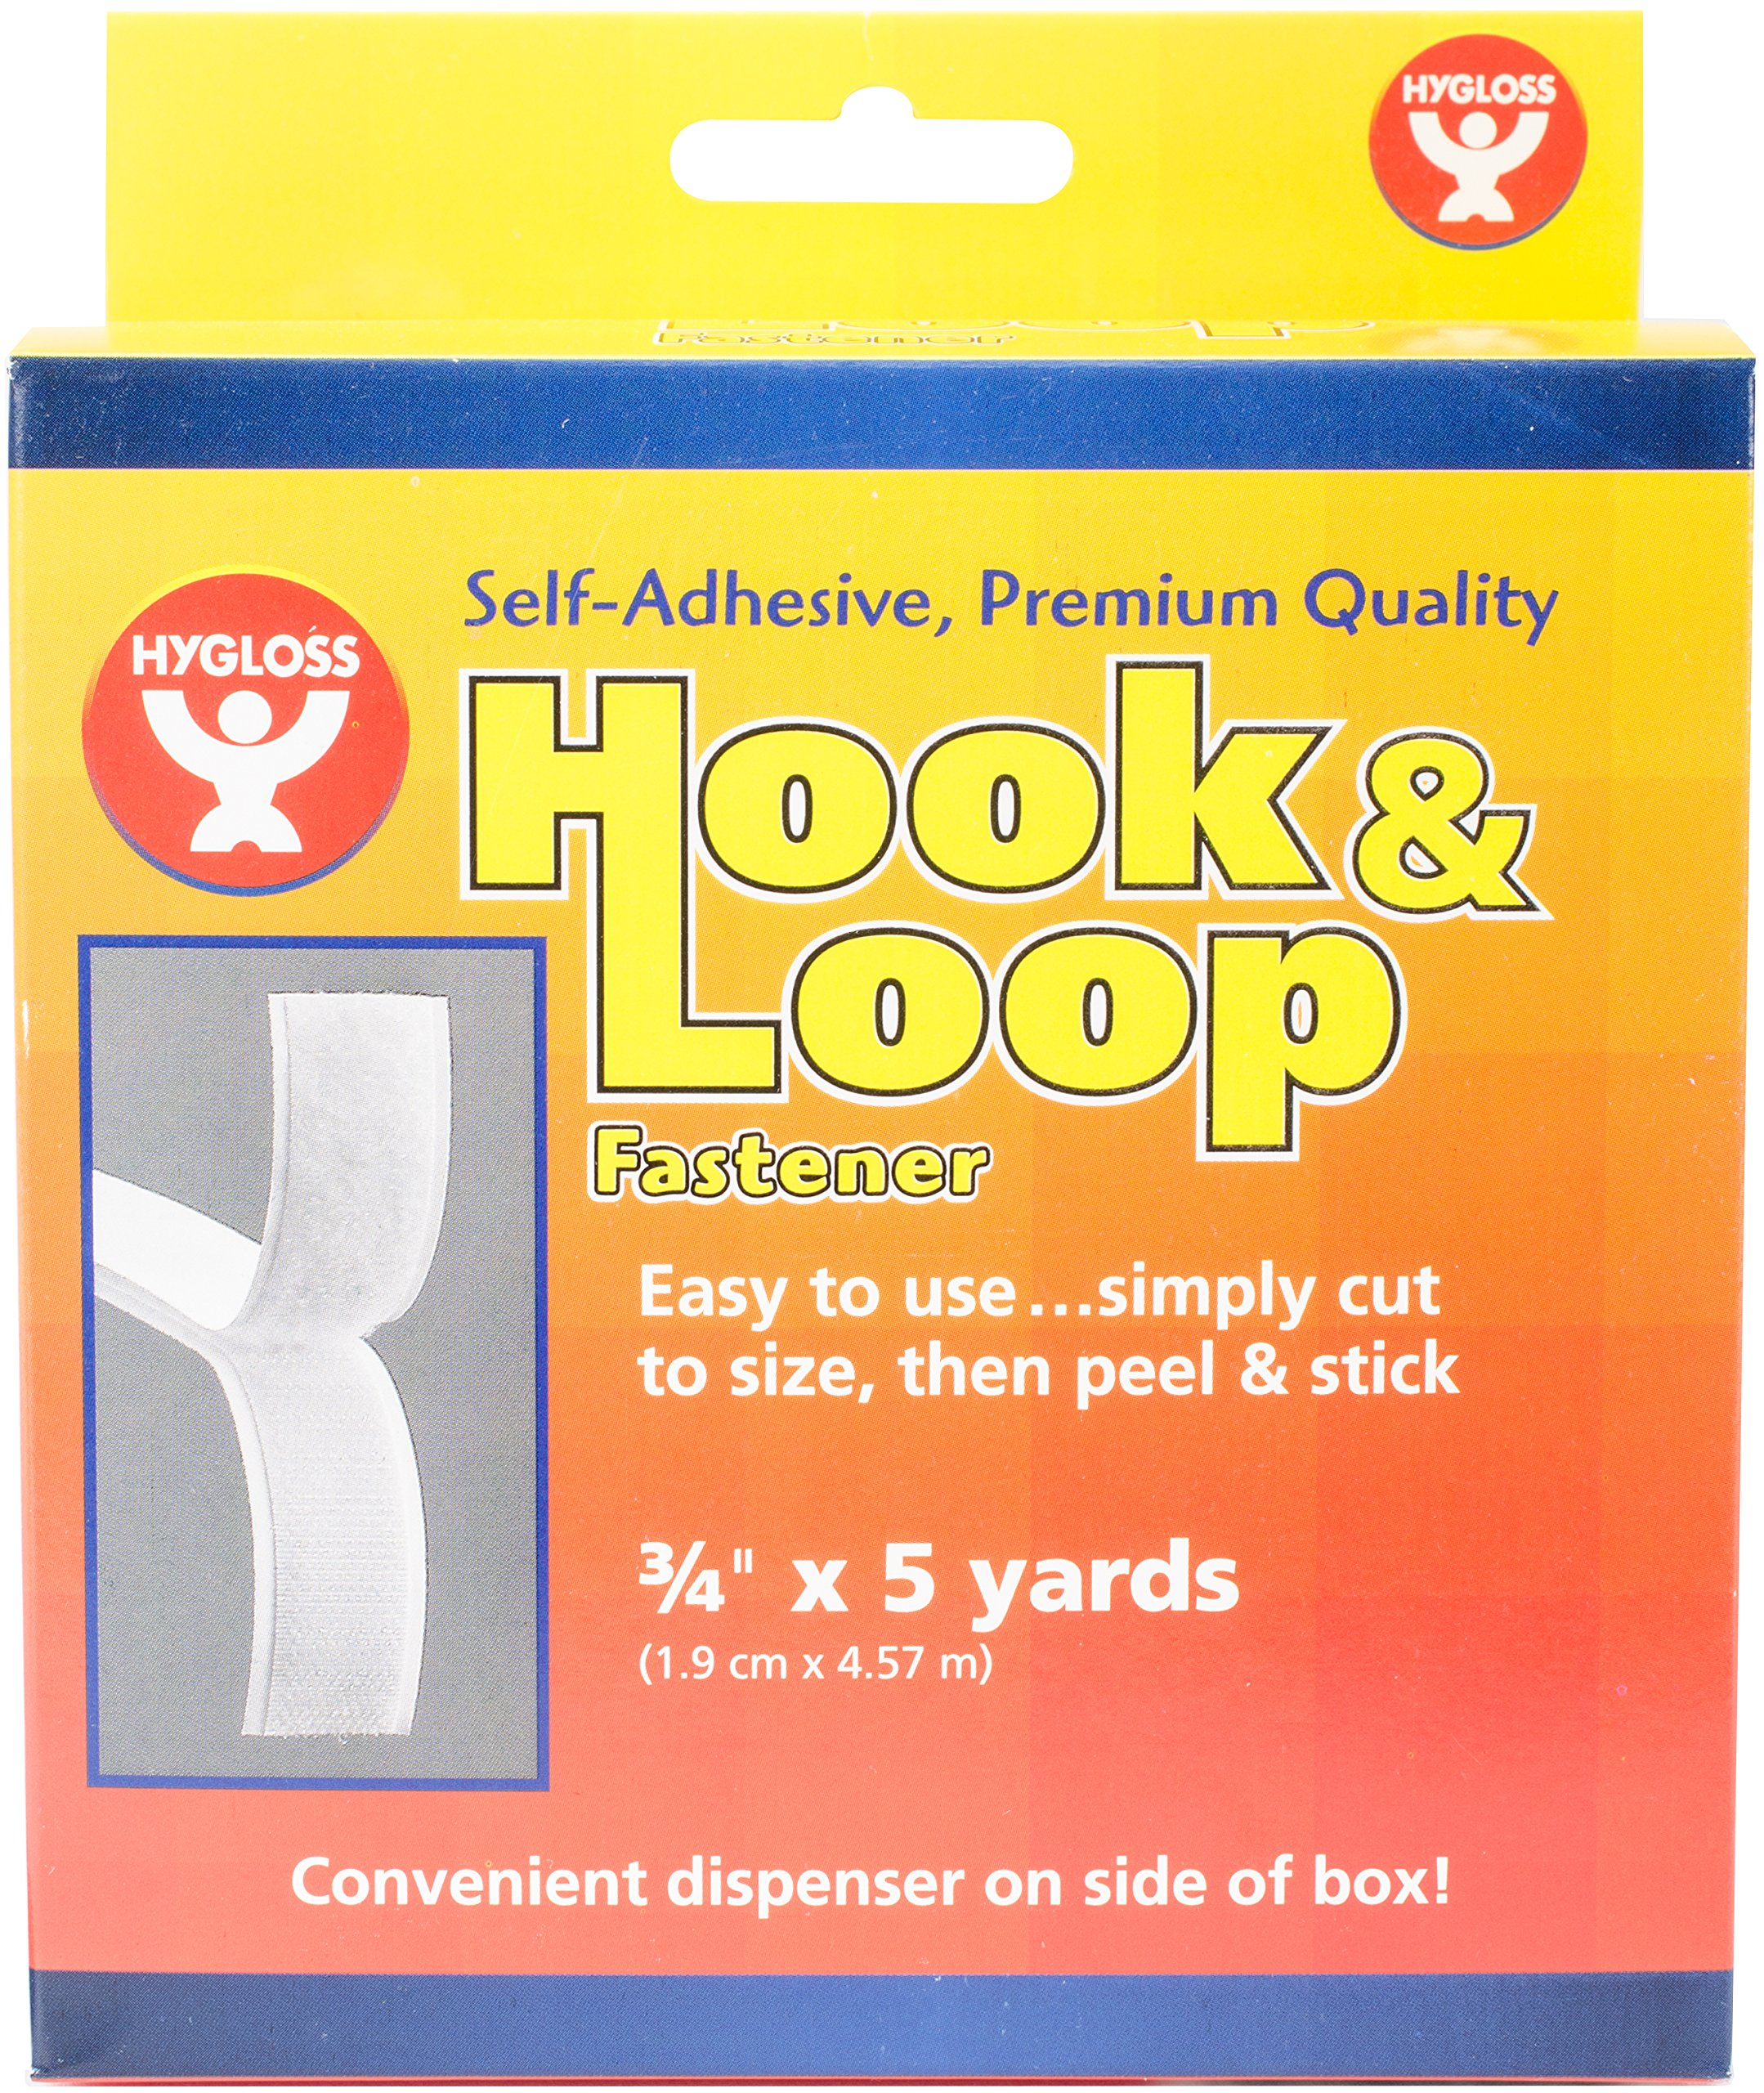 Hygloss Products Self Adhesive Strips - 15 Feet x 3/4 Inch Hook and Loop Fastener Sticky Back Tape With Dispenser, White